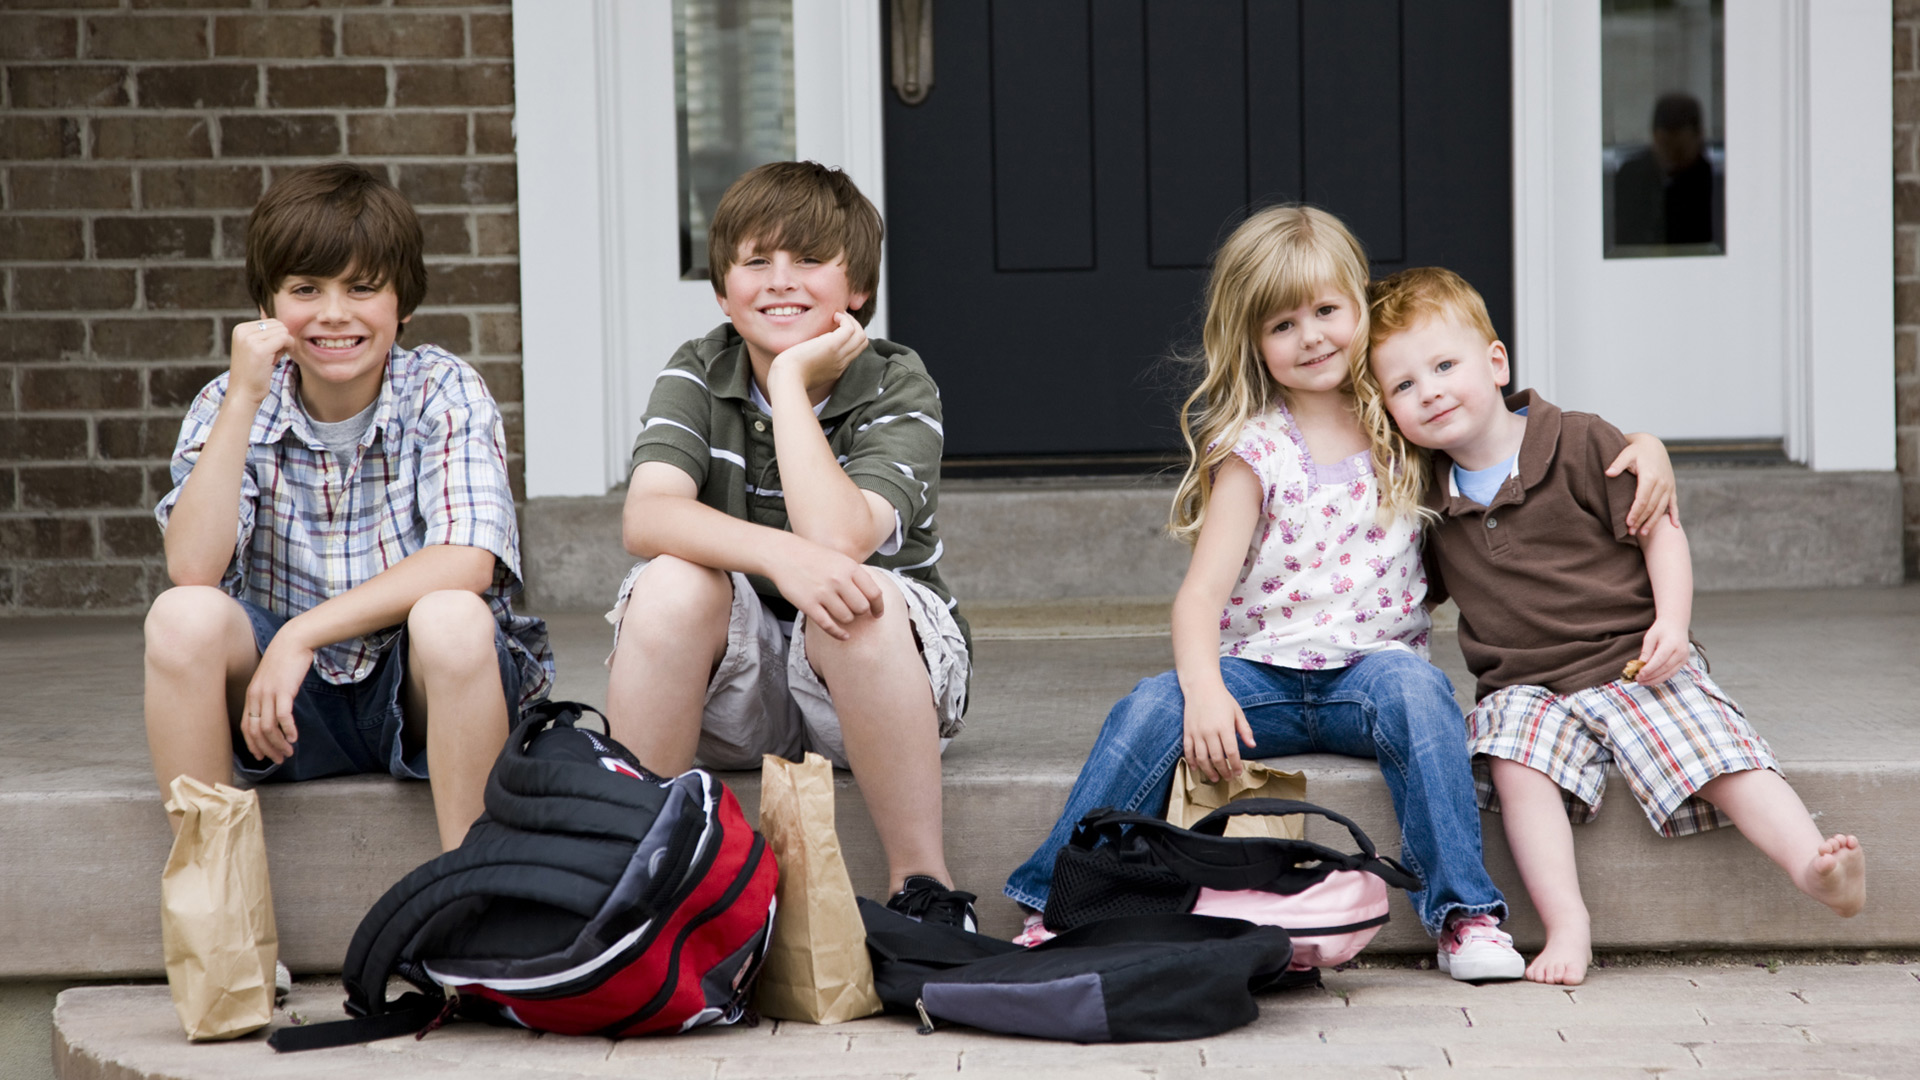 Children going back to school | PregnancyAndBaby.com